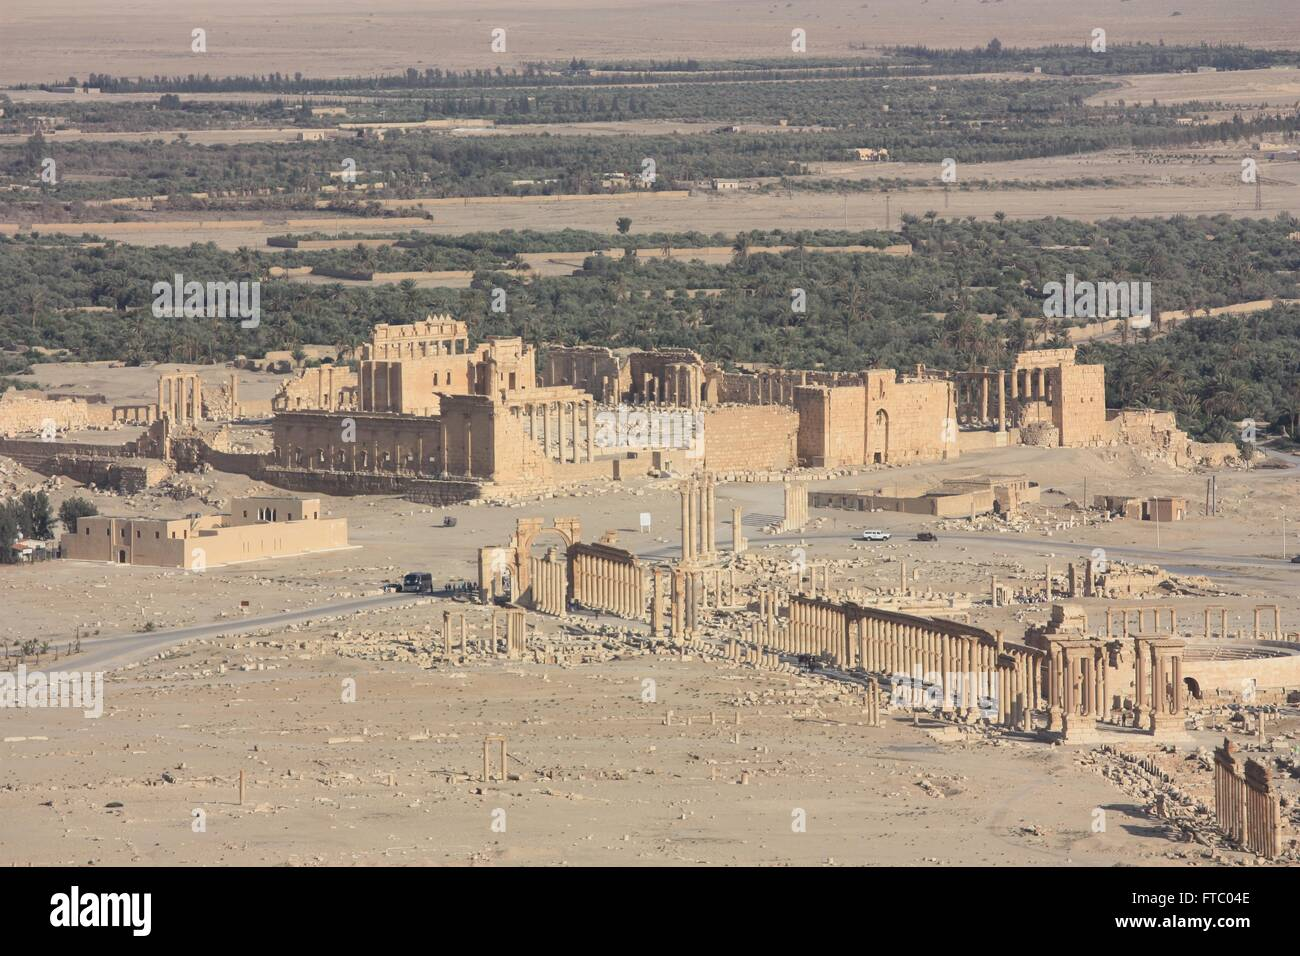 Ruins of the Qalaat Ibn Maan, Temple of Bel and colonnaded axis in the ancient Semitic city of Palmyra May 12, 2009 - Stock Image